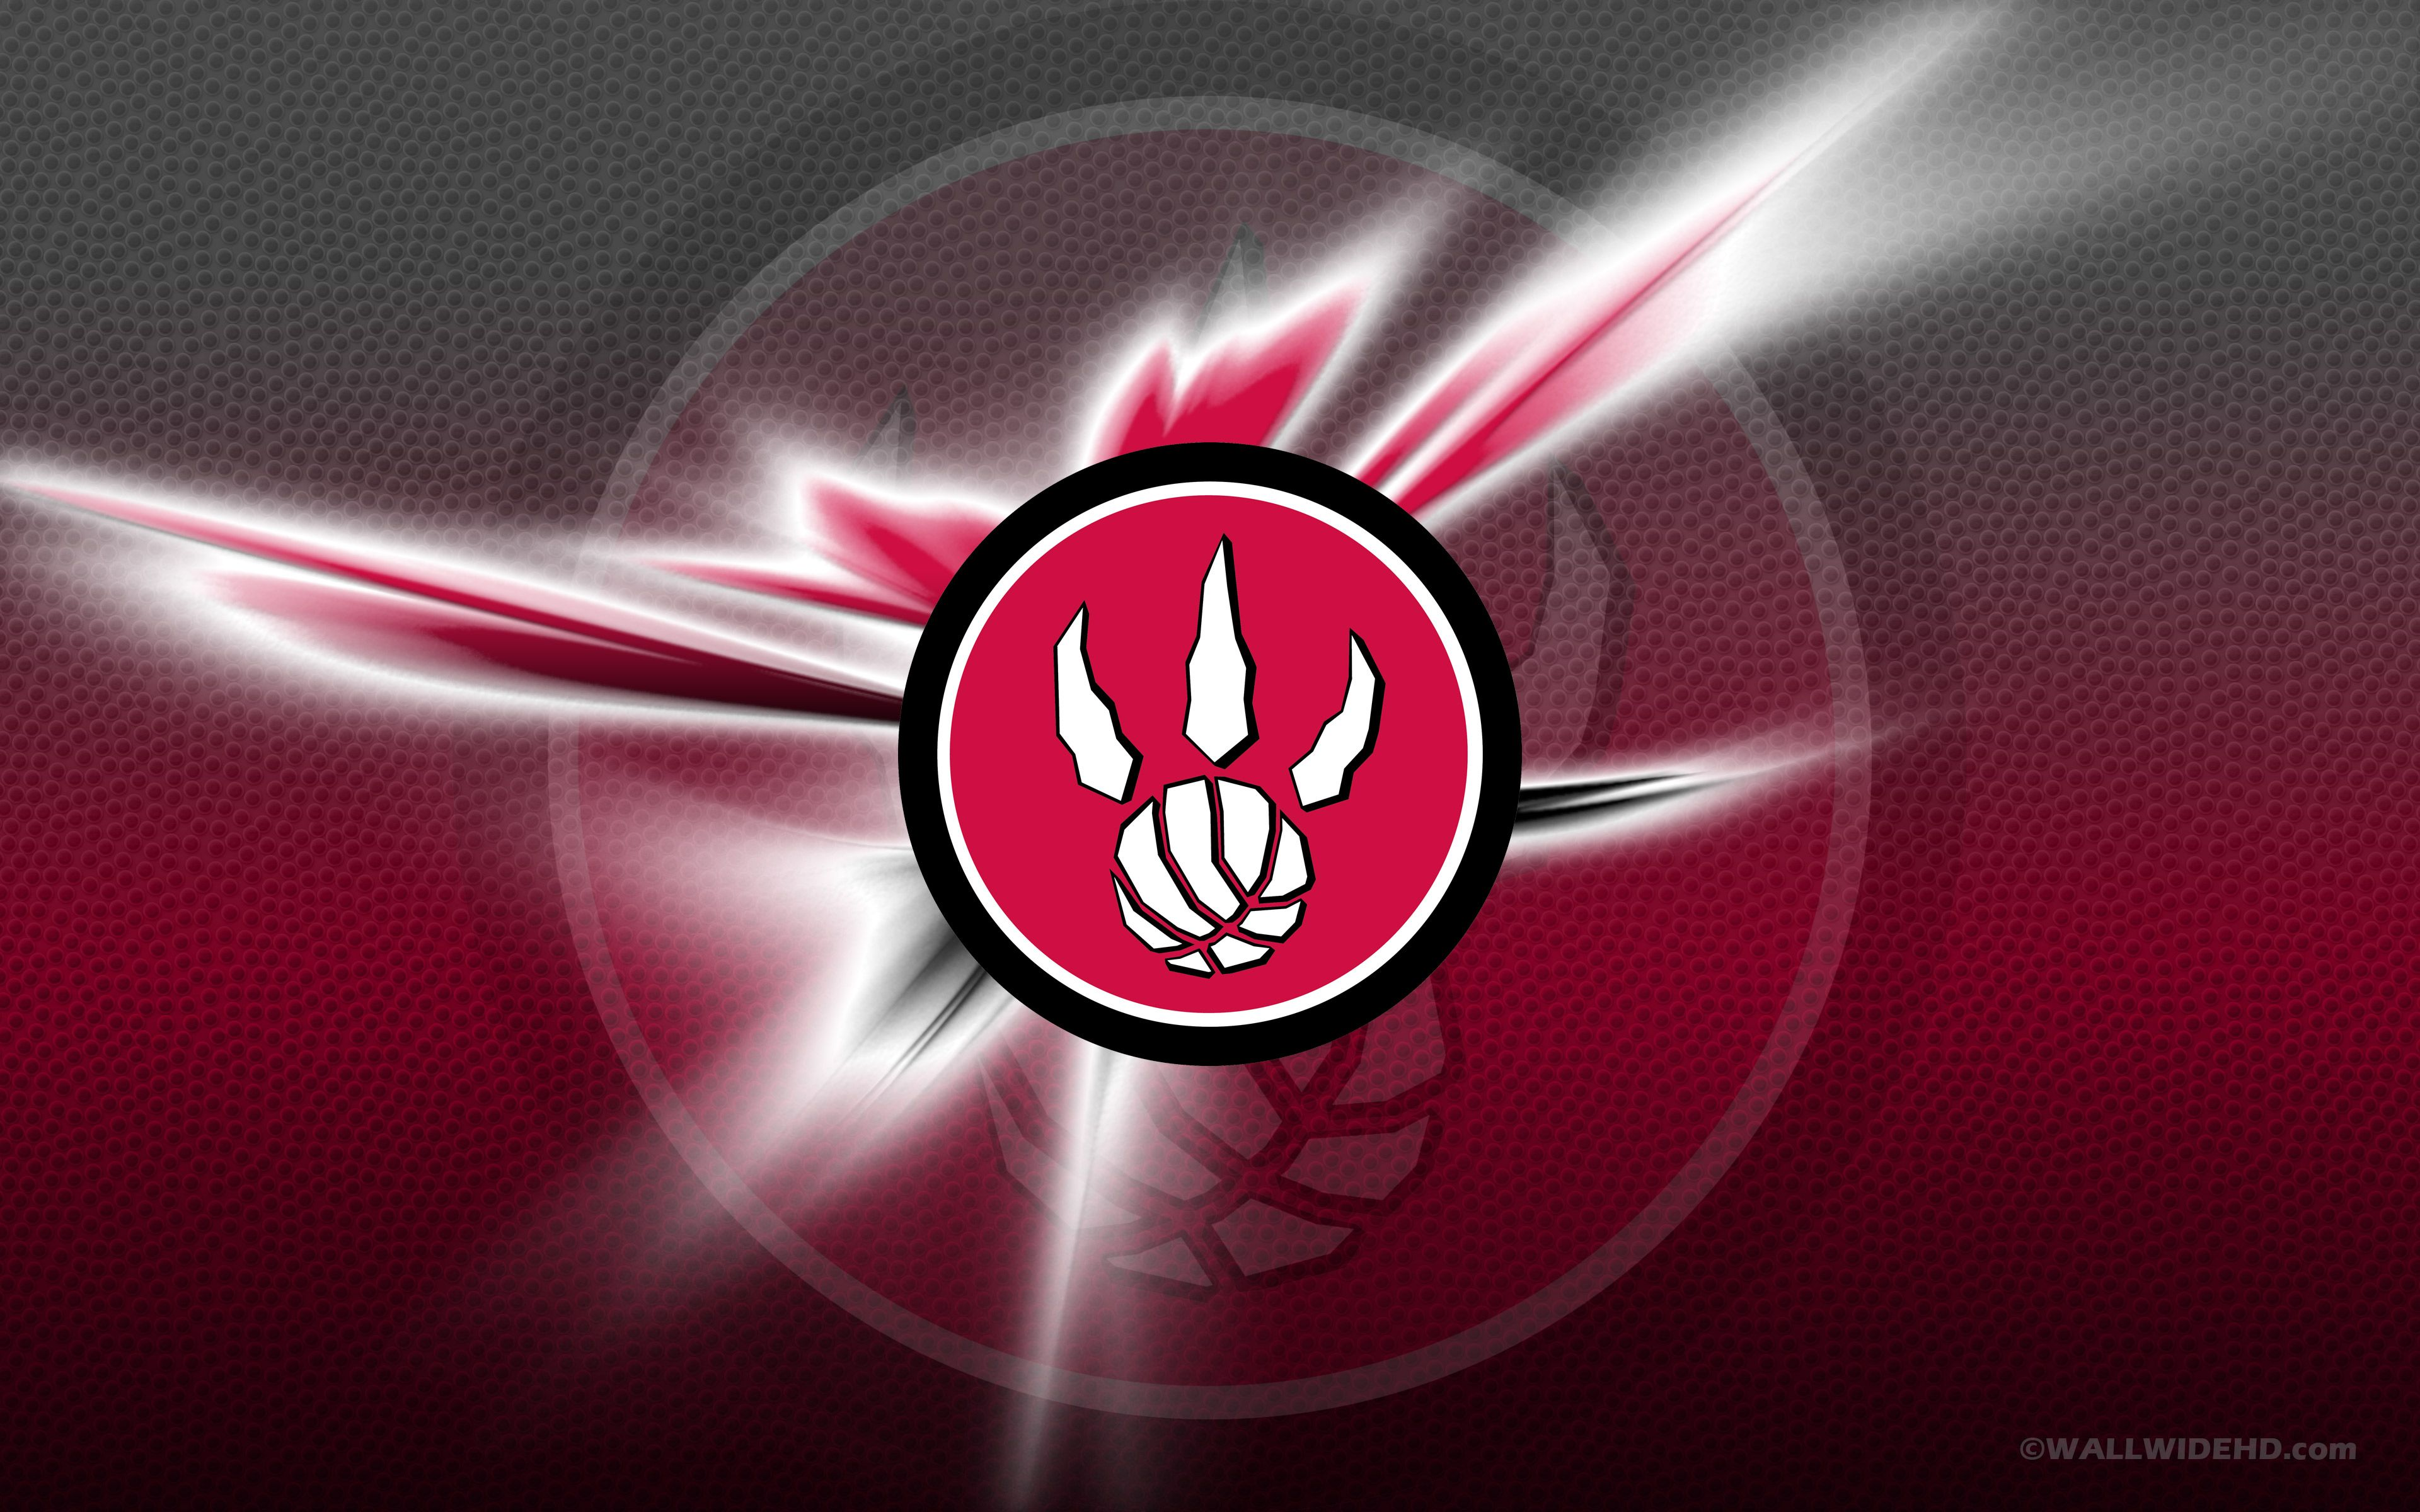 f1f4264ac721 images of the TORONTO raptors basketball logos